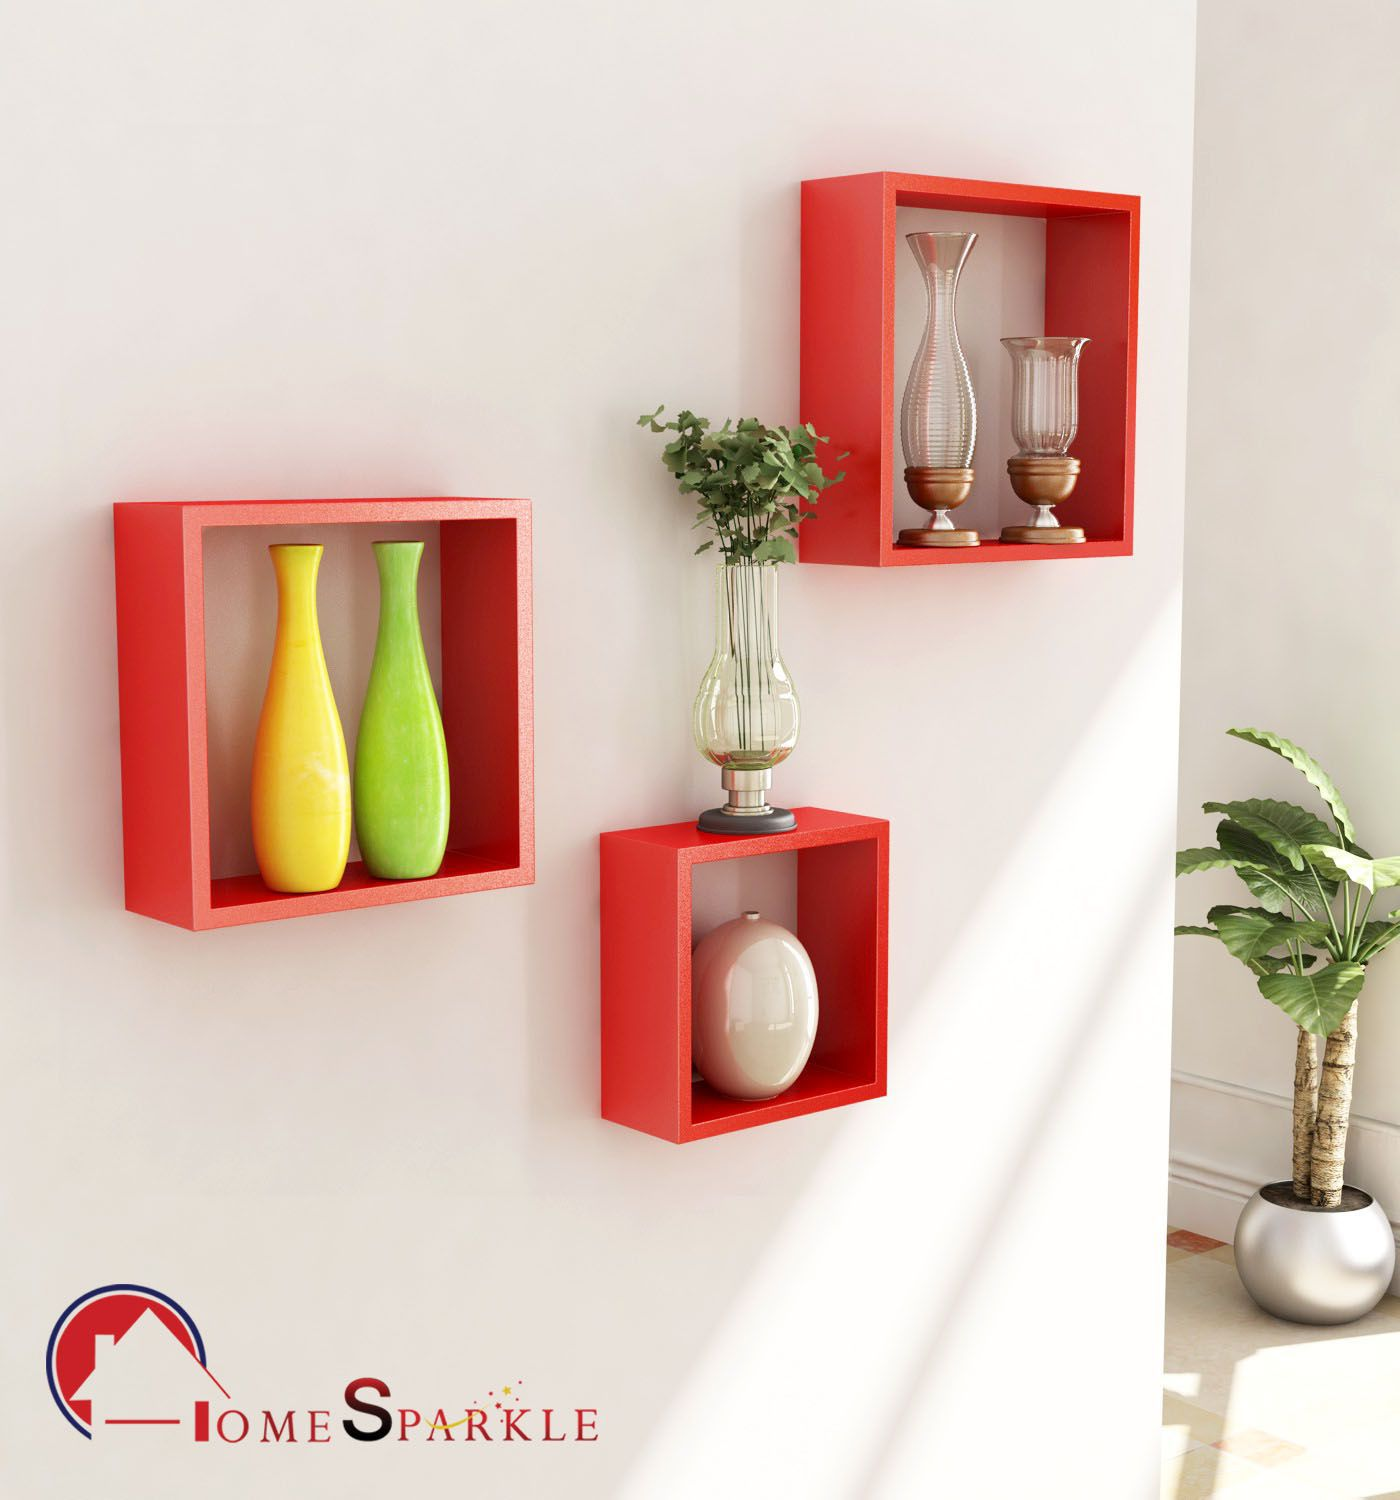 Home Sparkle MDF Set of 3 Square Wall Shelves For Wall Décor -Suitable For Living Room/Bed Room (Designed By Craftsman)